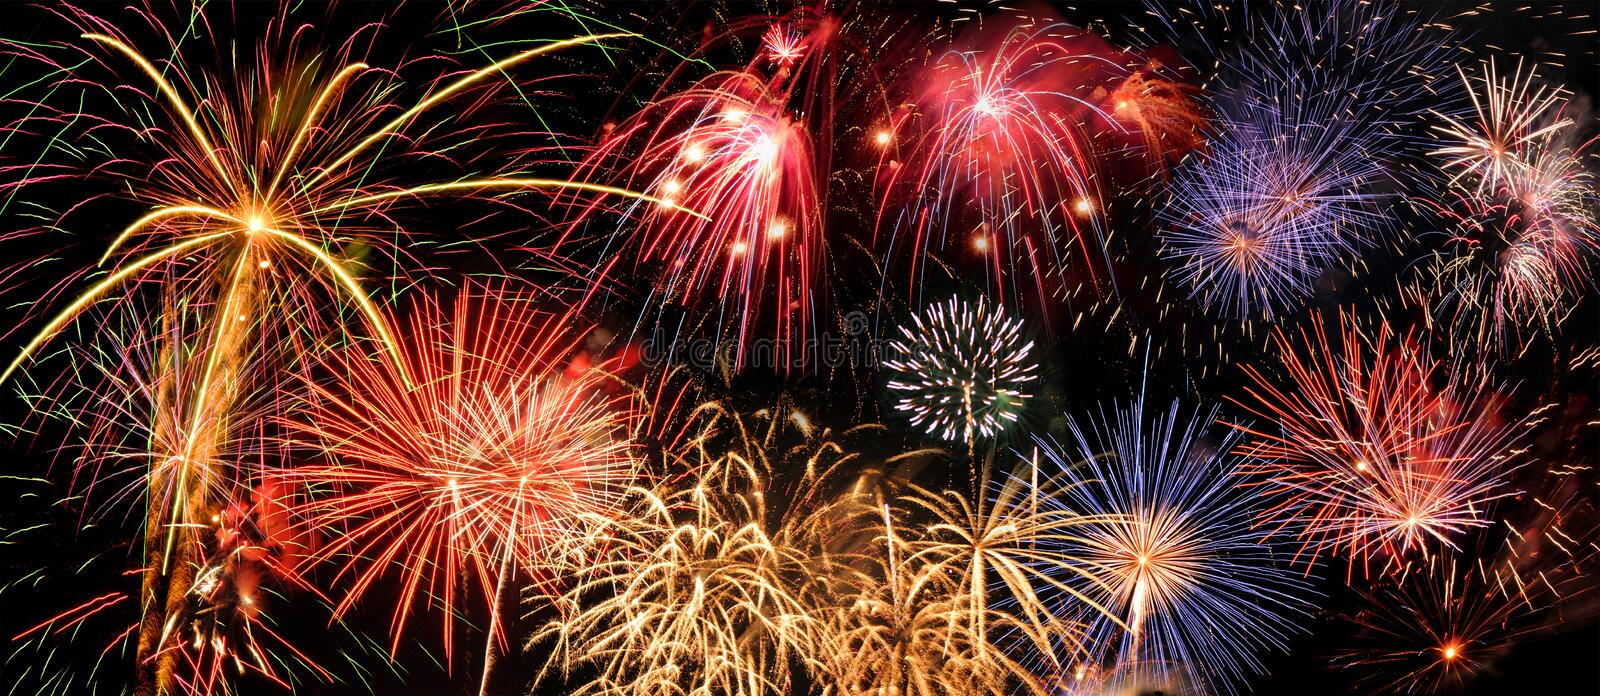 Download Fireworks stock image. Image of glow, explosion, party - 5983751